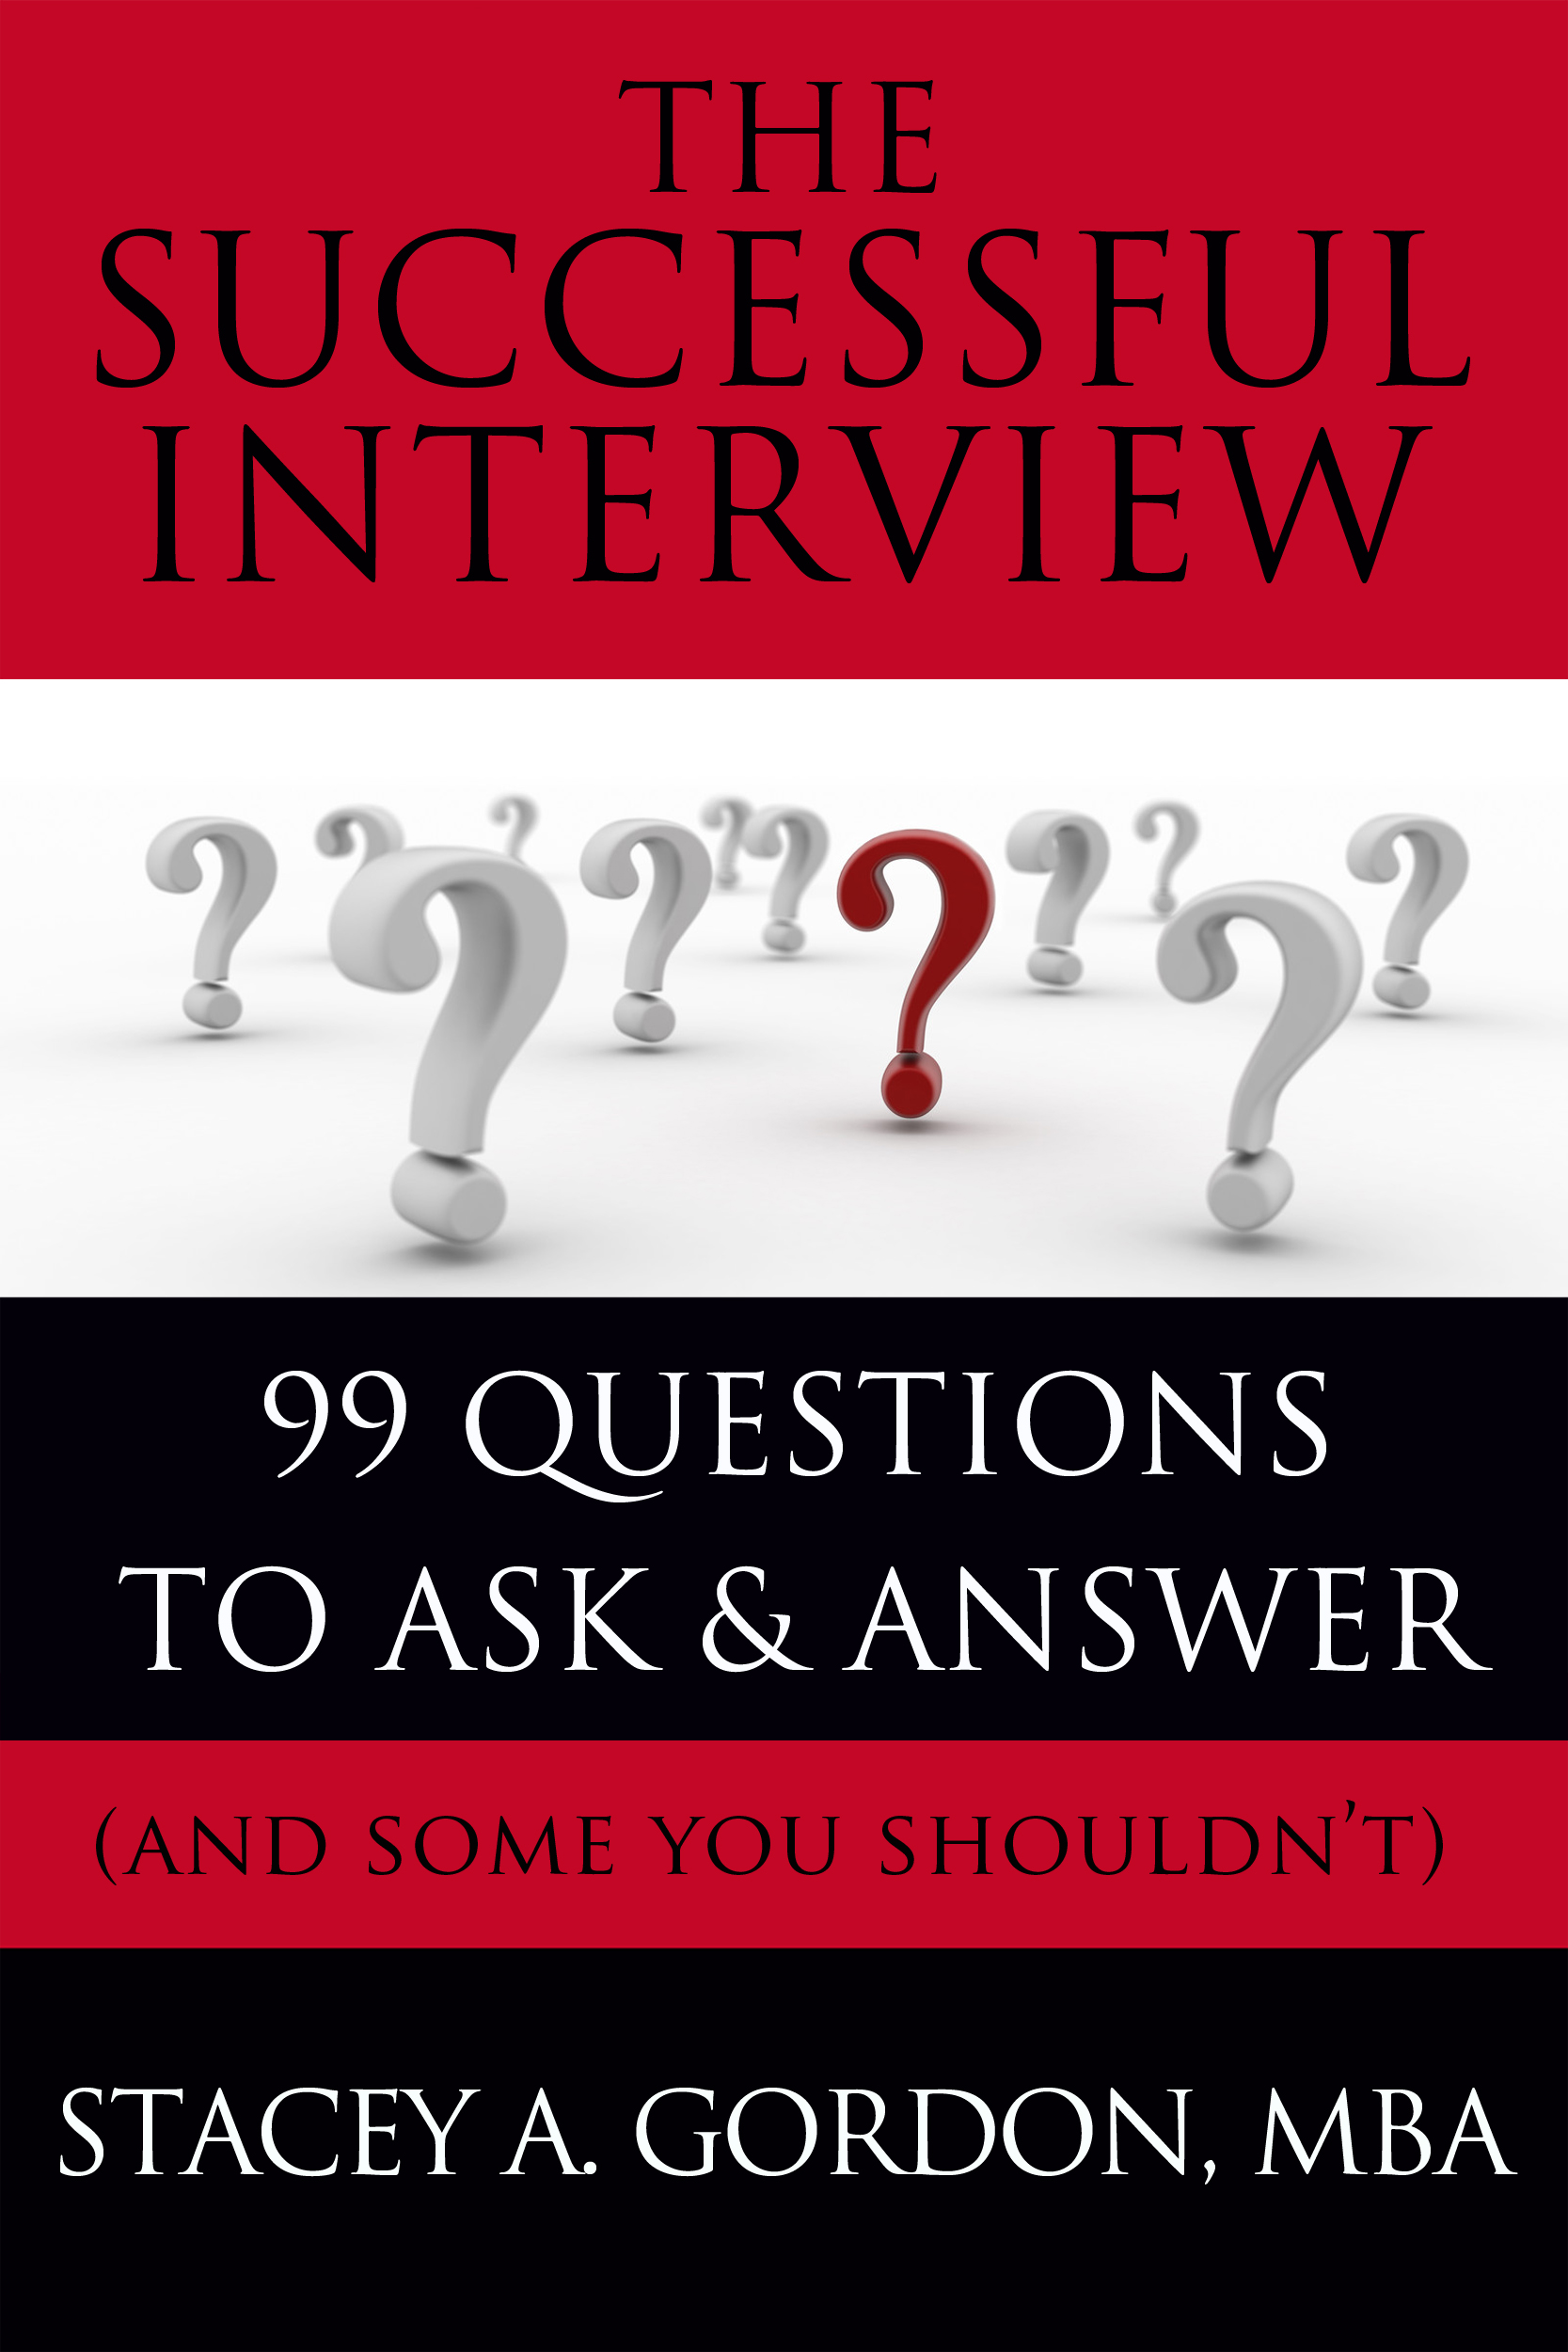 The Successful Interview by Stacey Gordon